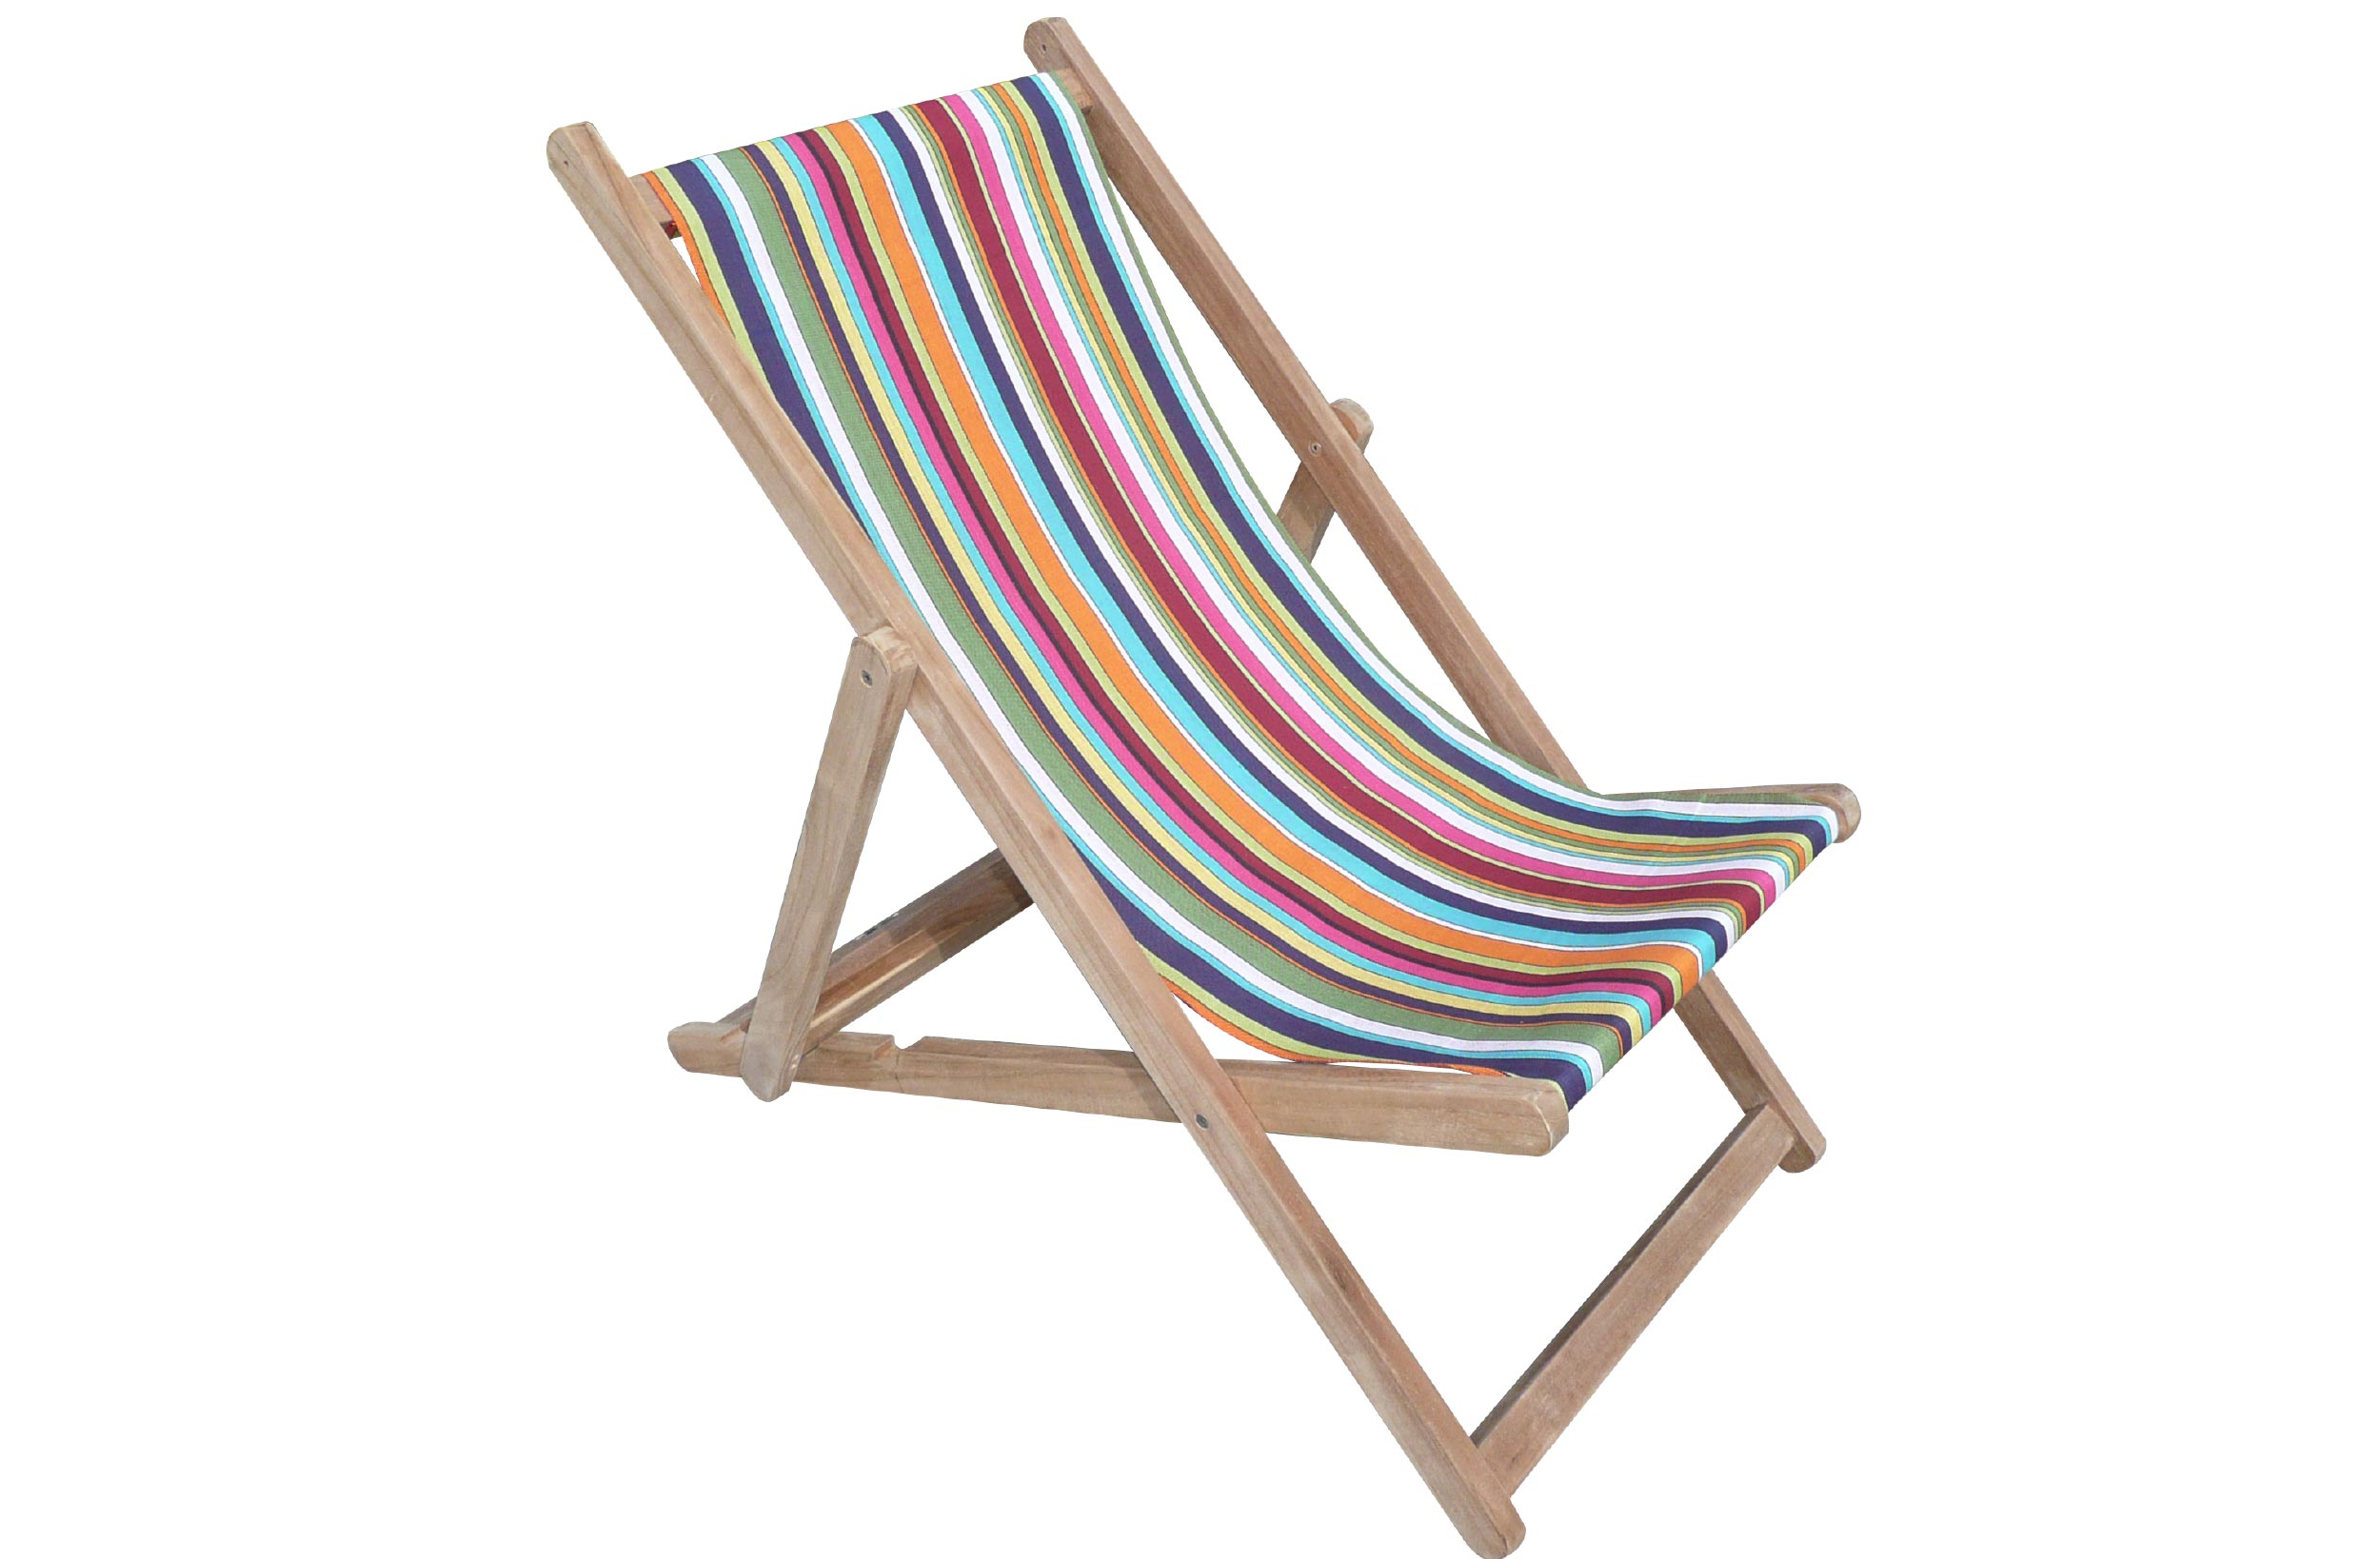 rainbow striped deckchairs wooden folding deck chairs. Black Bedroom Furniture Sets. Home Design Ideas